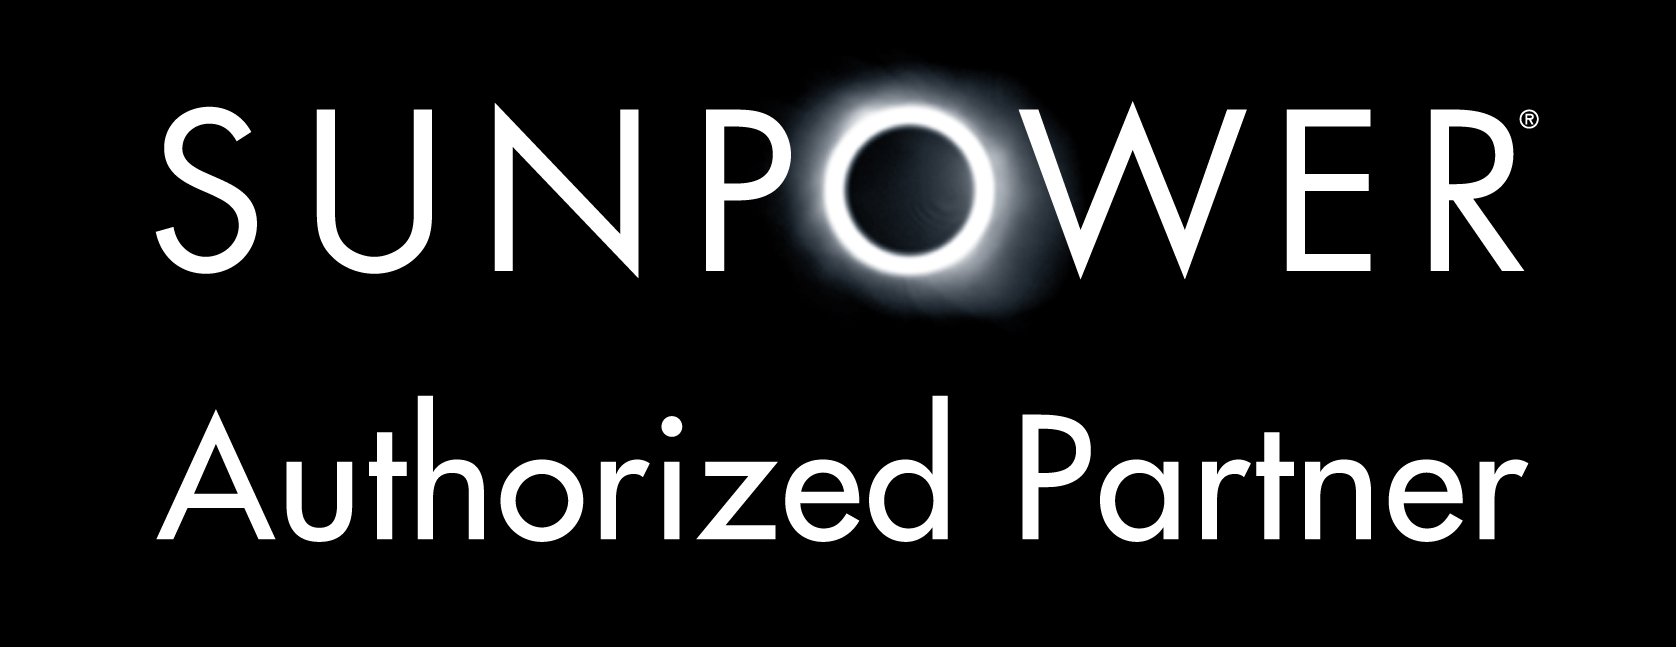 http://www.sunpowercorp.it/homes/how-to-buy/solar-installers/